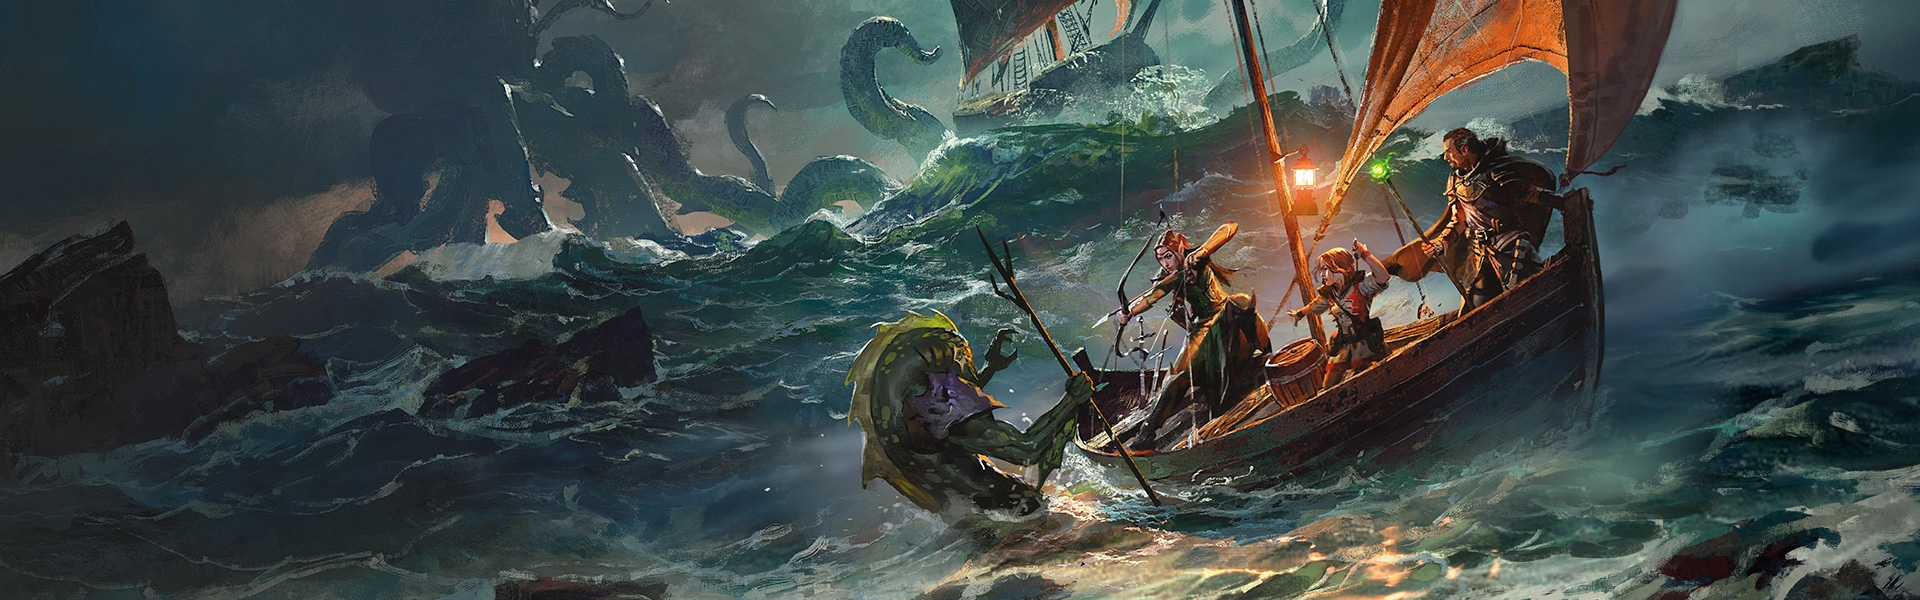 Ghosts of Saltmarsh | Dungeons & Dragons